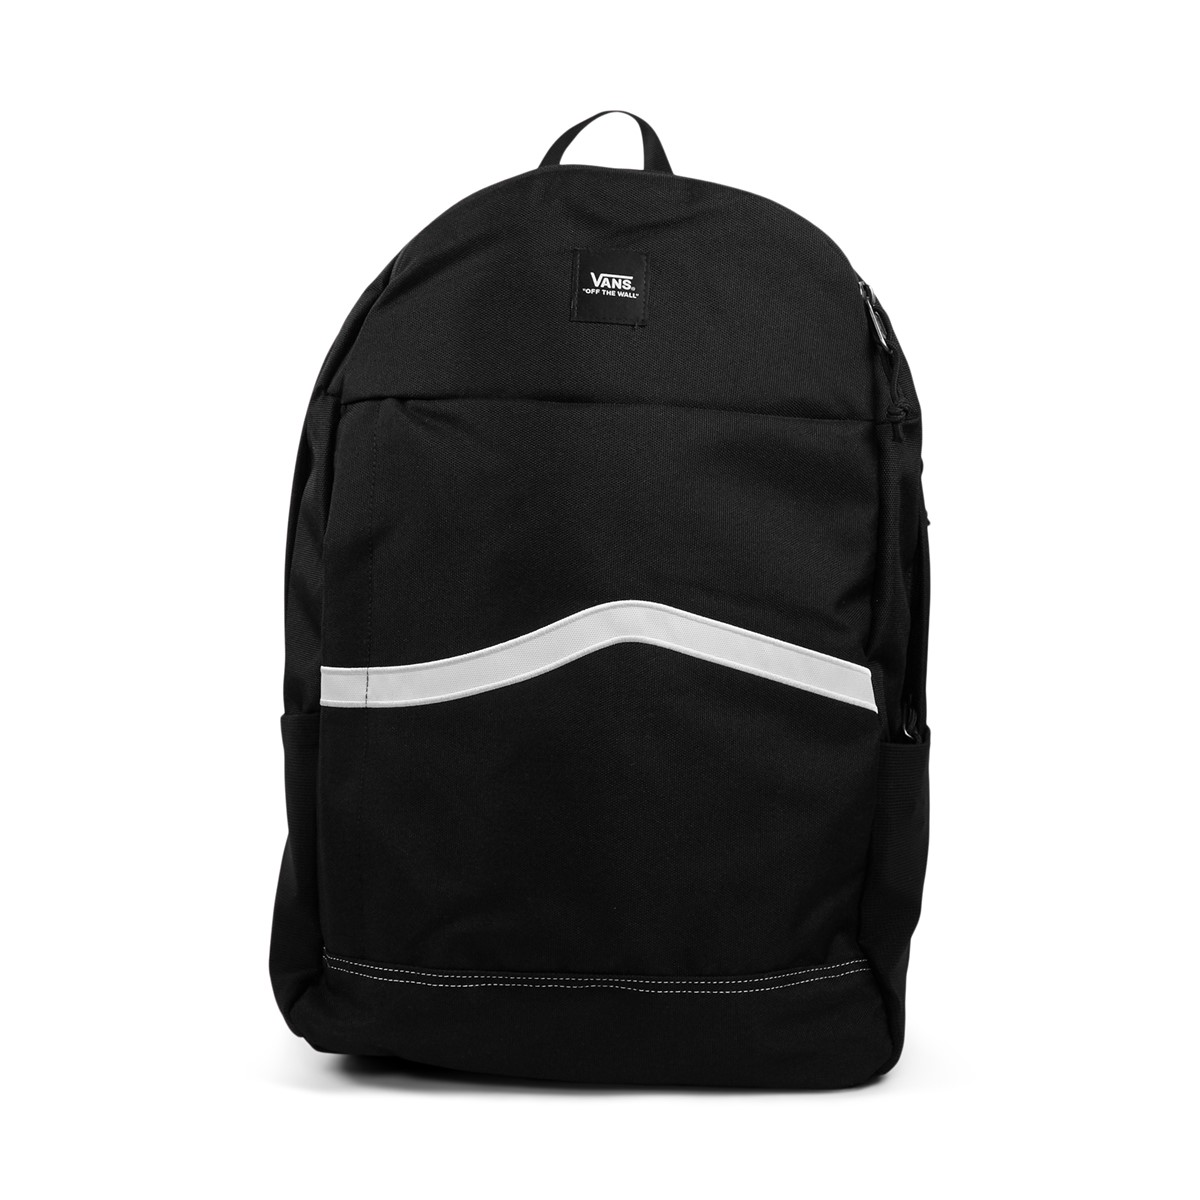 Construct Backpack in Black/White